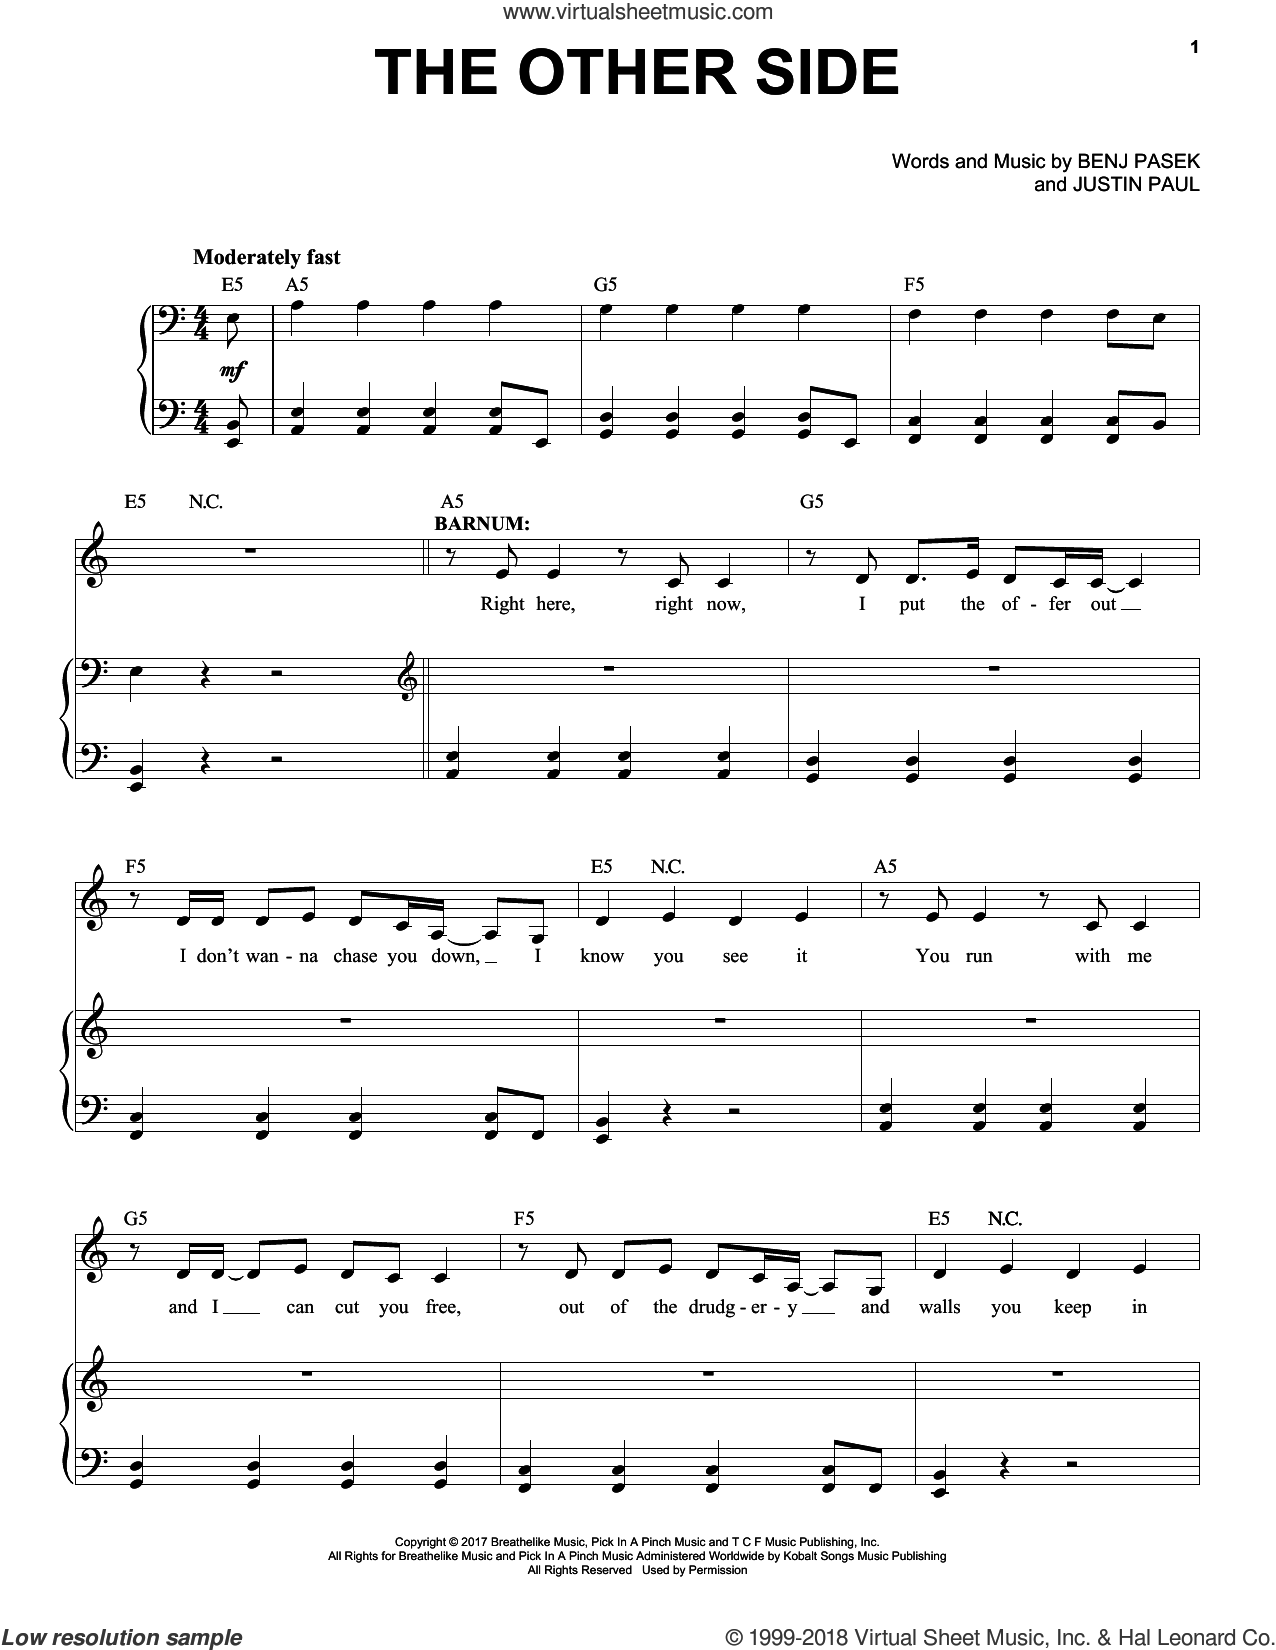 The Other Side sheet music for voice and piano by Pasek & Paul, Benj Pasek and Justin Paul, intermediate skill level